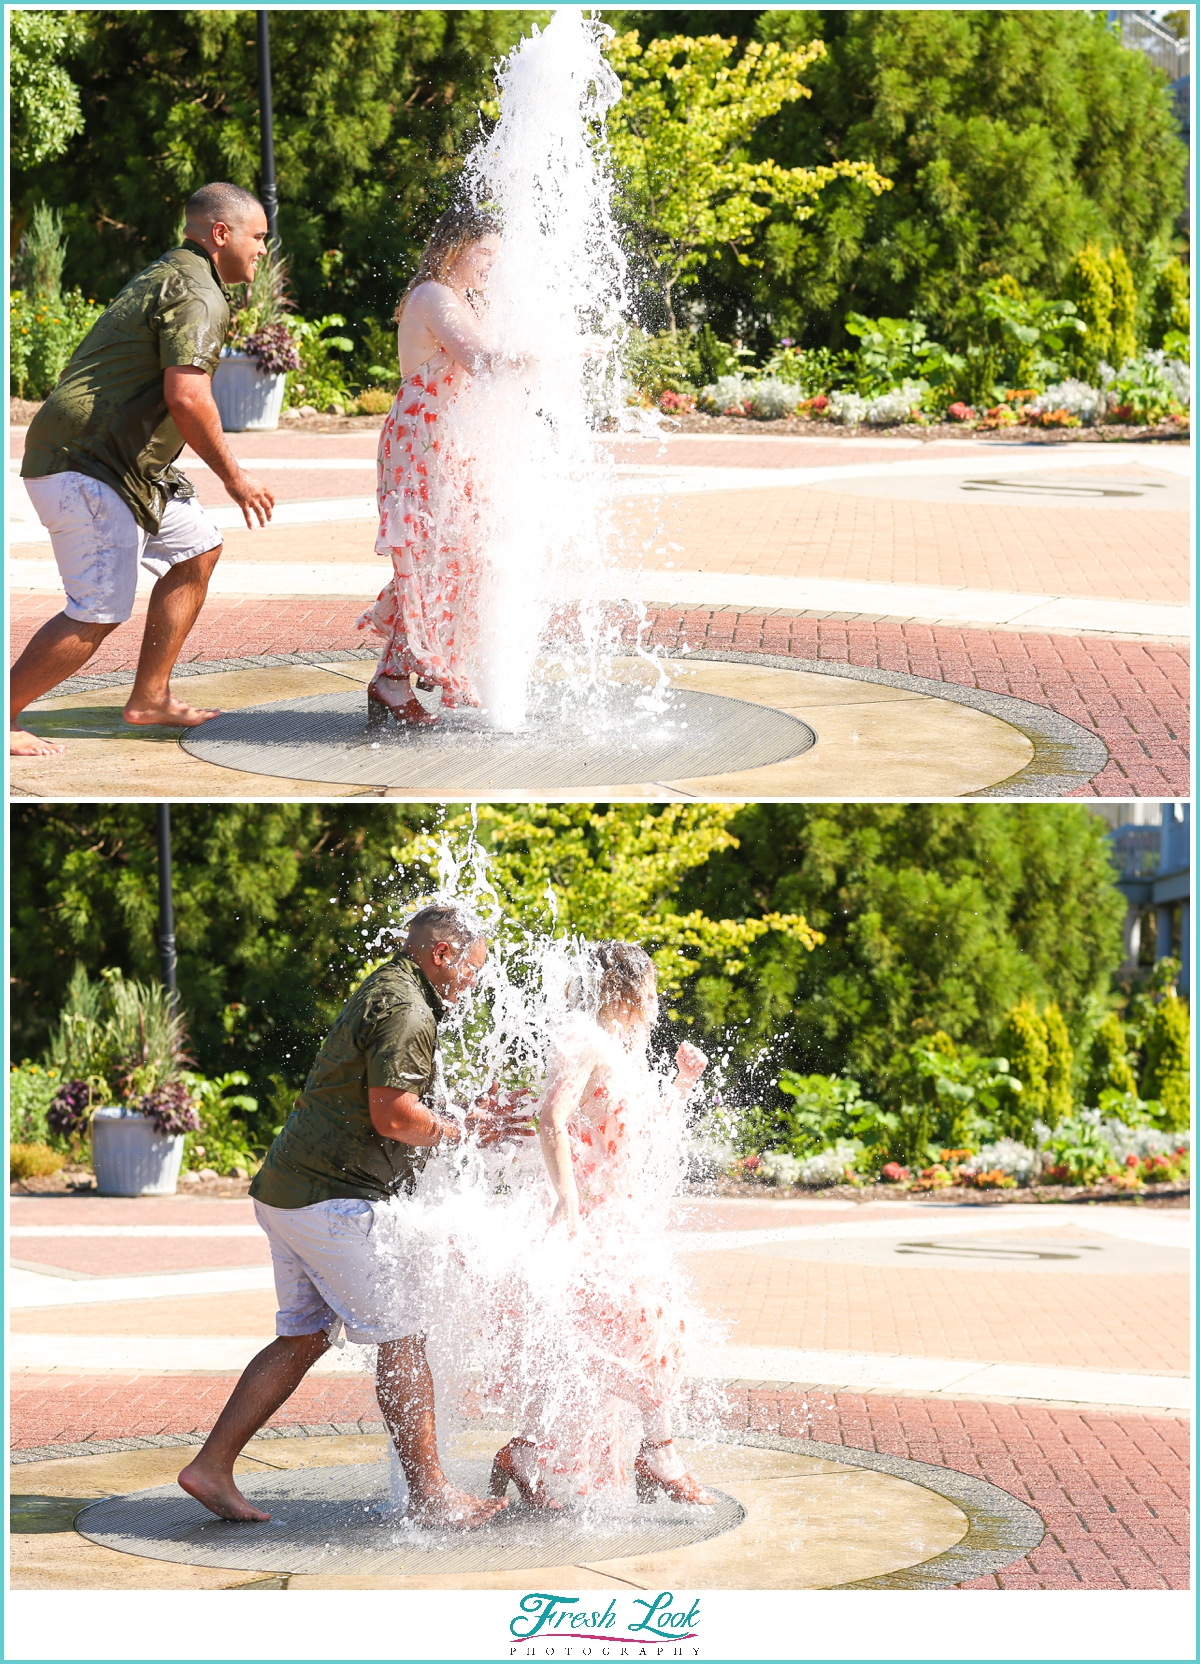 splashing in the fountain together